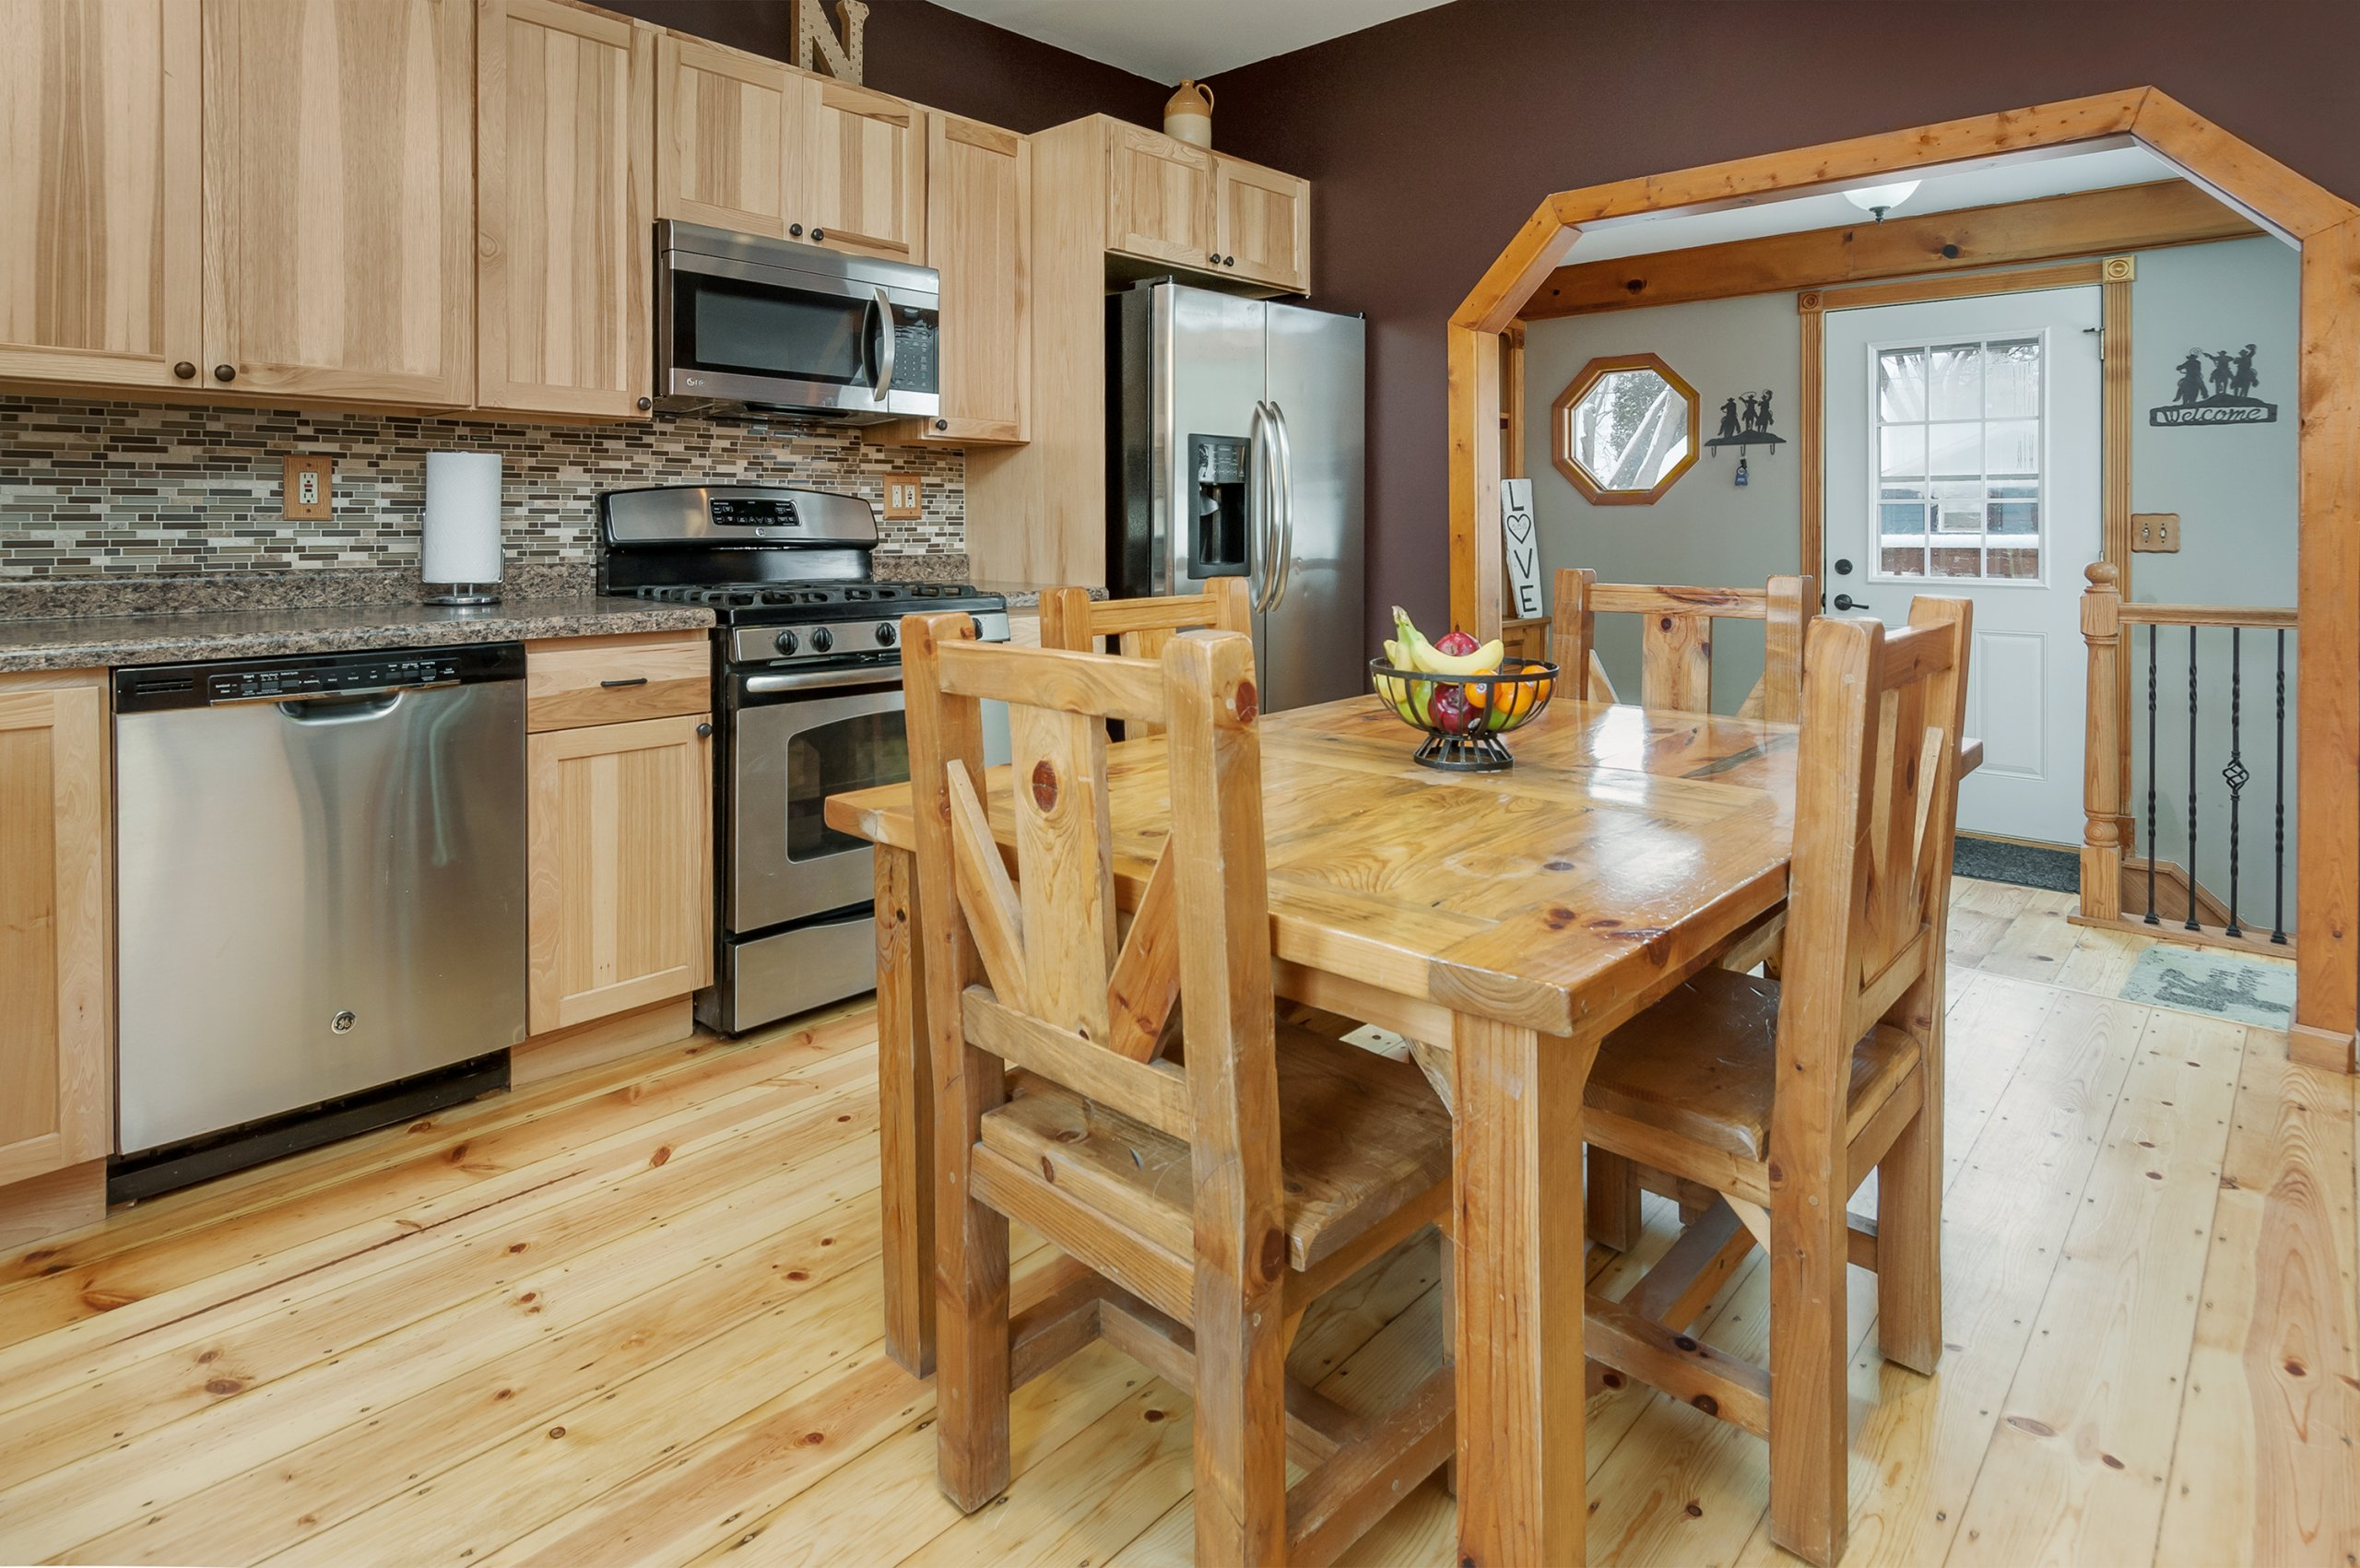 Classy country kitchen in Sandwich, Illinois